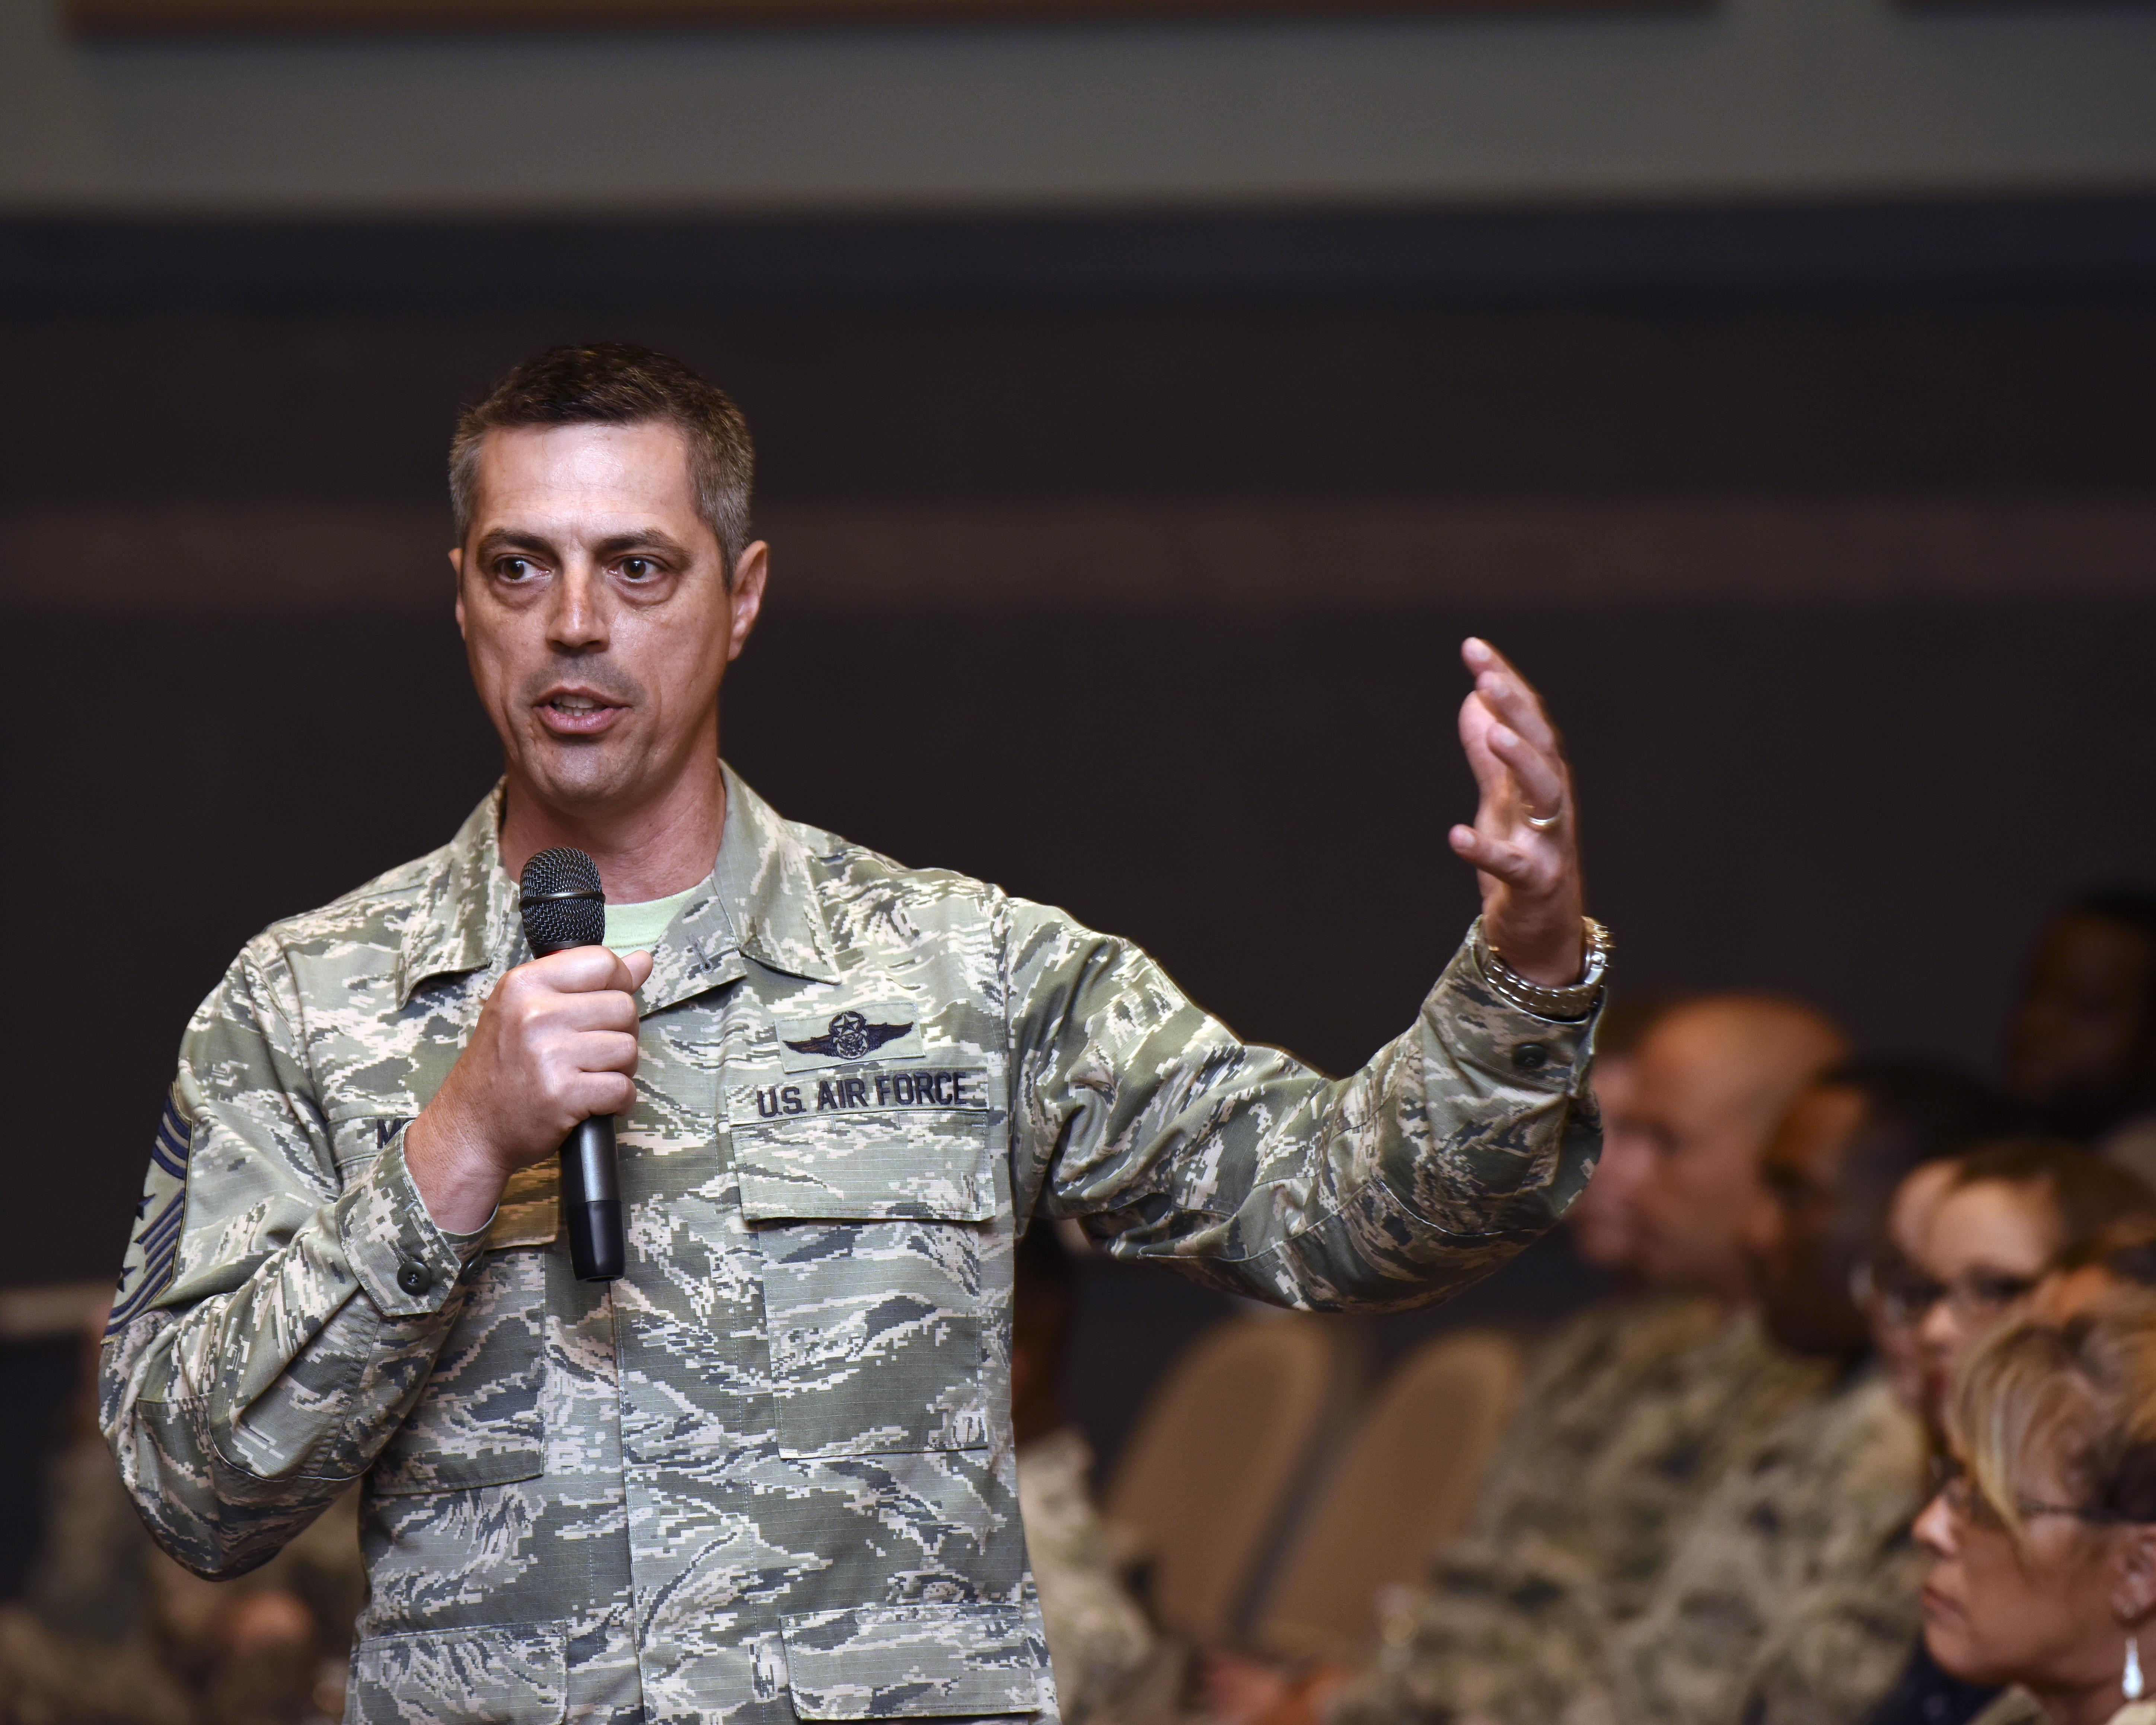 dyess afb senior personals Roundup newswires editor brian harrod provides comprehensive up-to-date news coverage, with aggregated news from sources all over the world from the roundup newswires network.